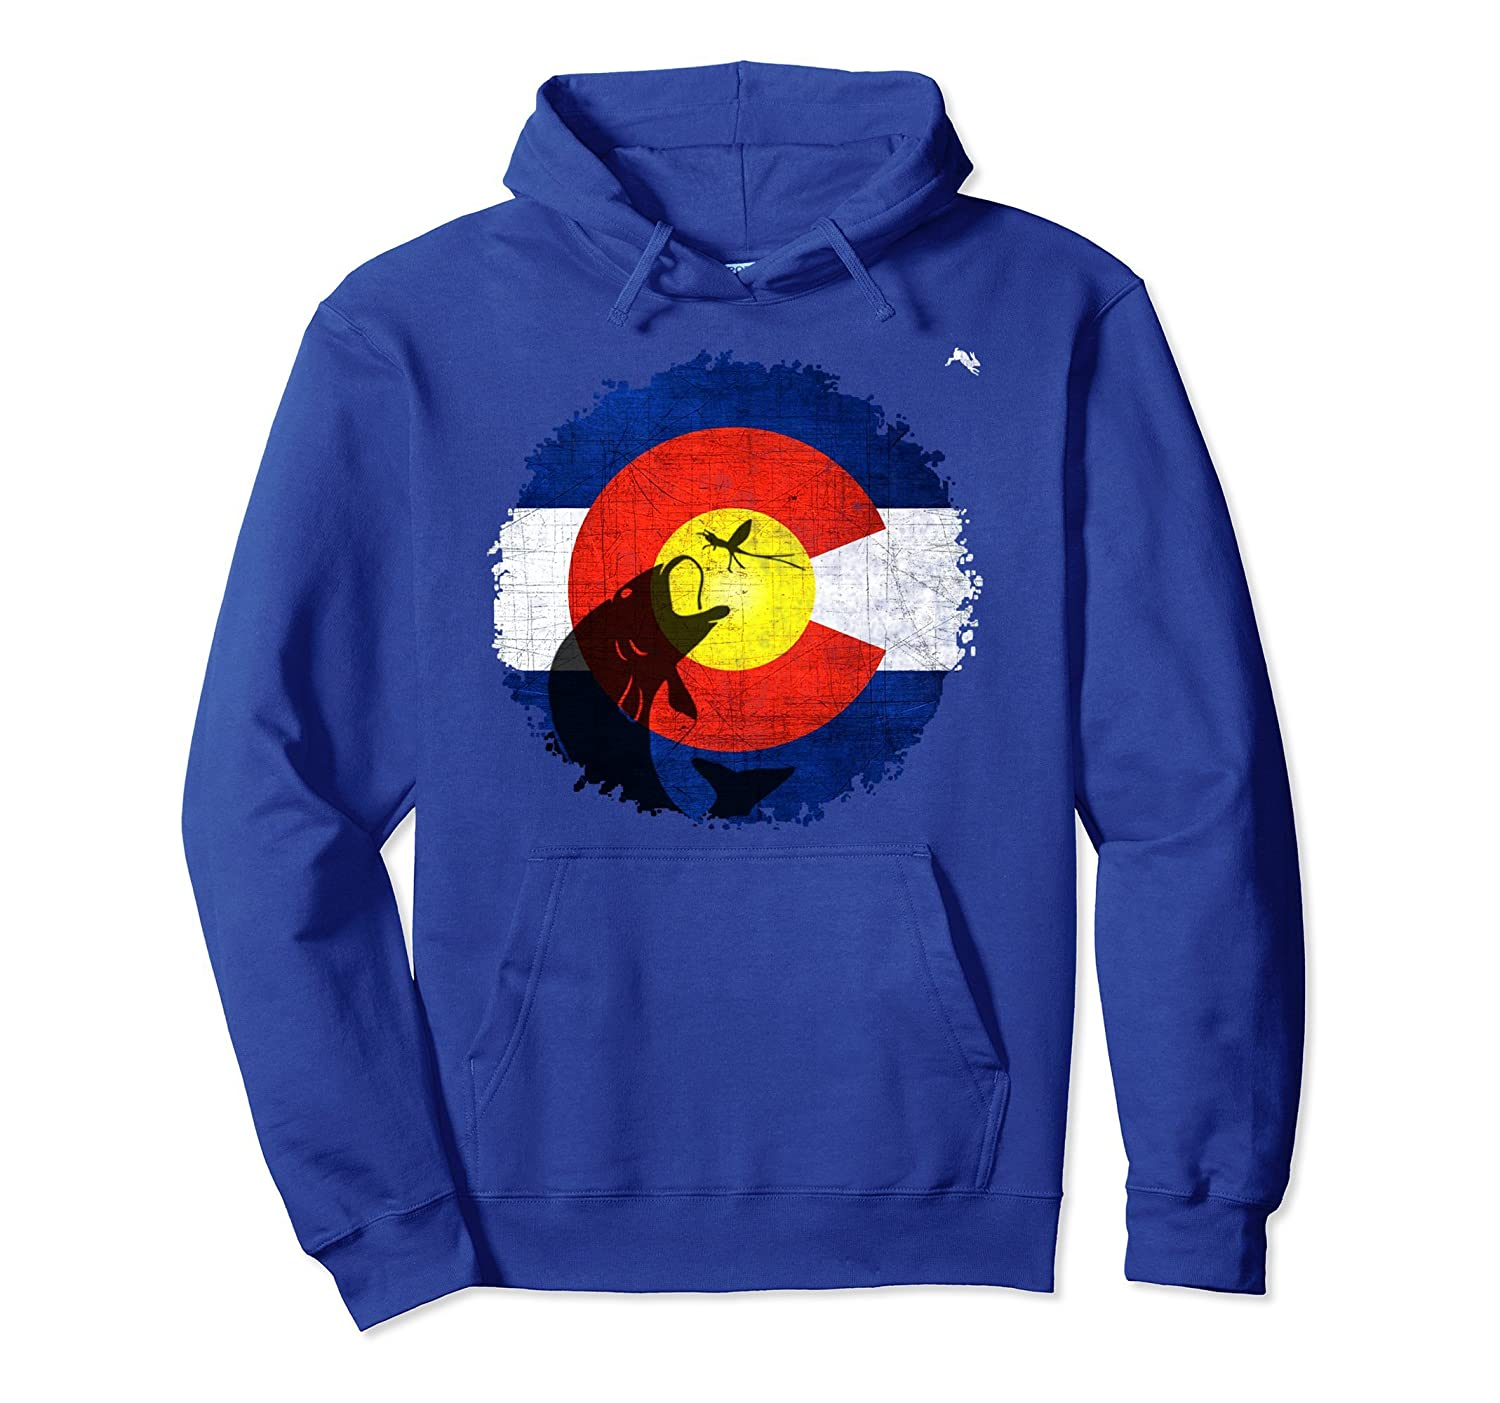 Colorado Flag Hoodie with Fly Fishing Design-ah my shirt one gift